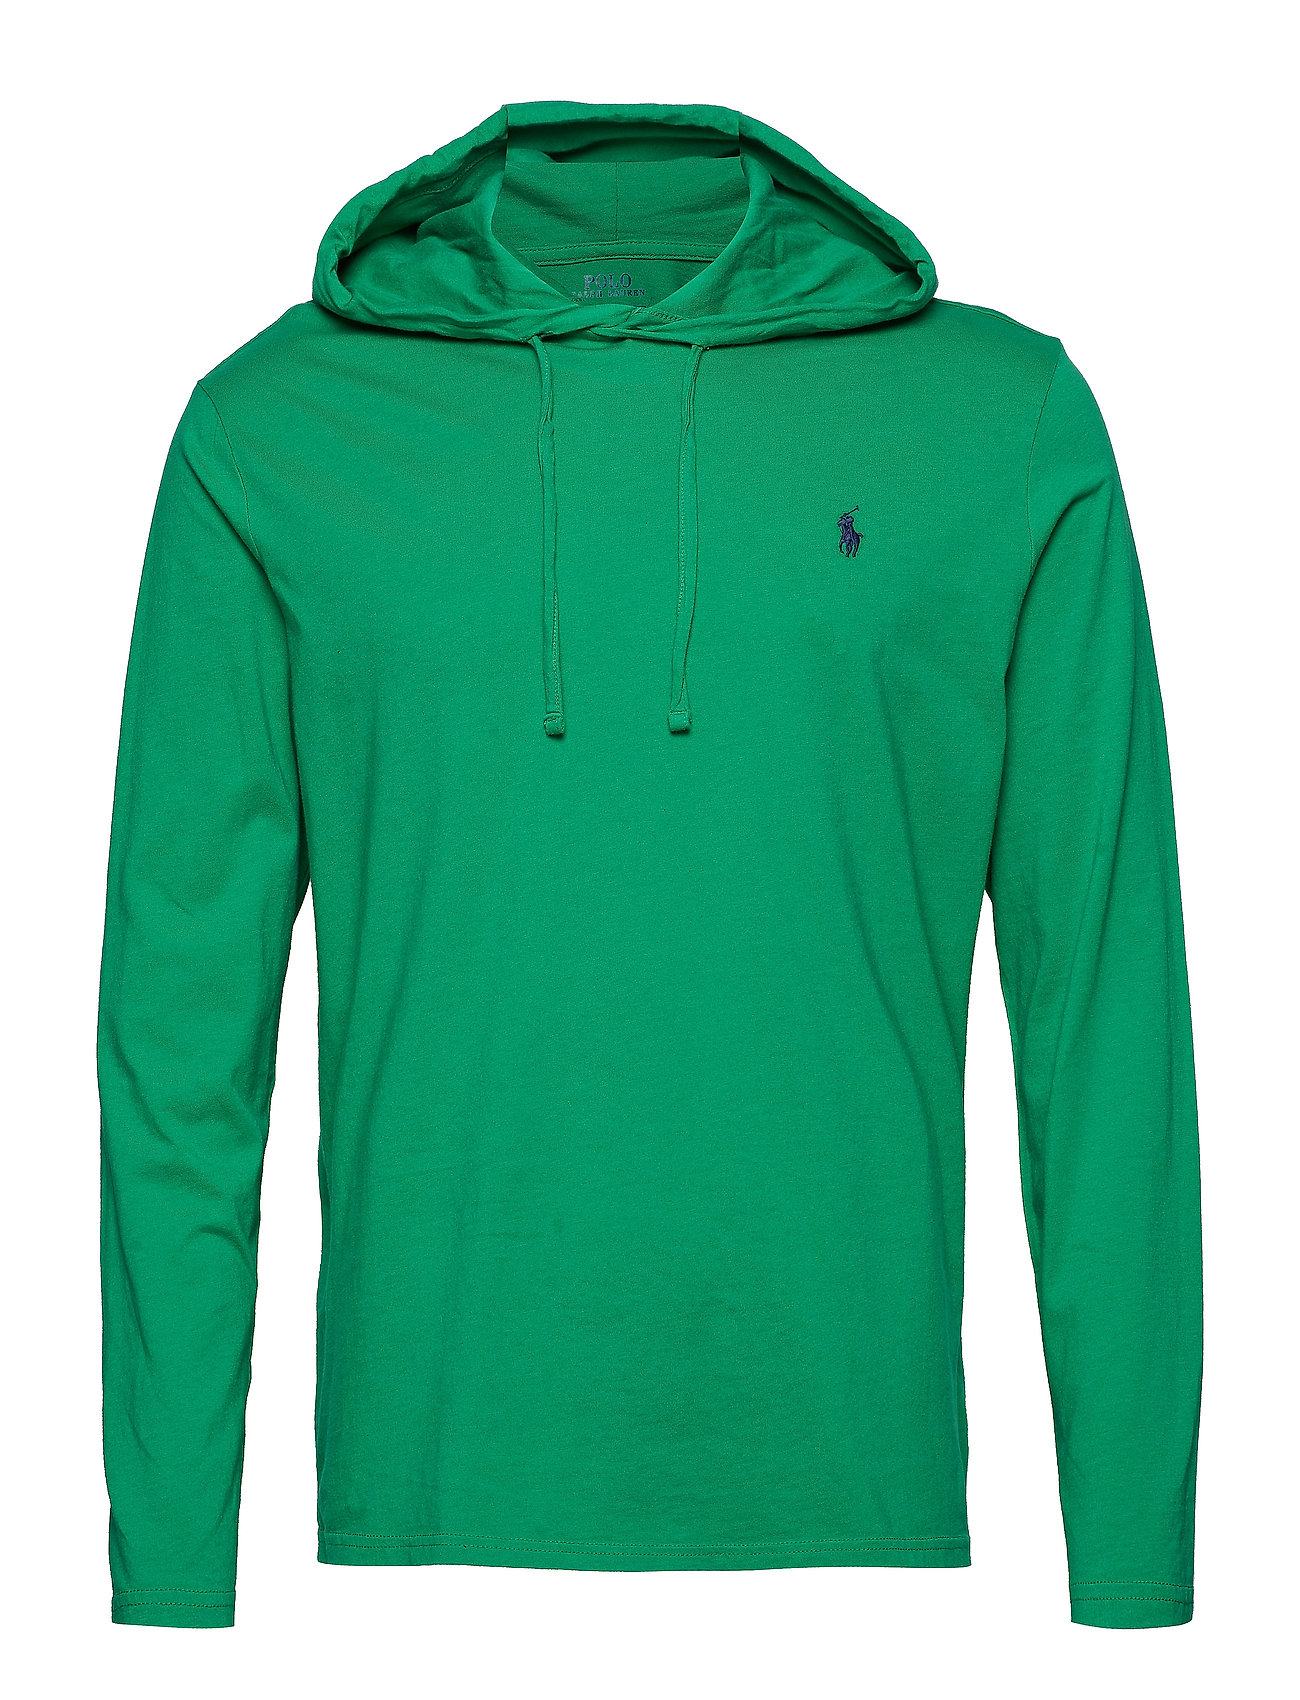 f1bfed3f7 Cotton Jersey Hooded T-shirt (Stem) (£34.50) - Polo Ralph Lauren ...